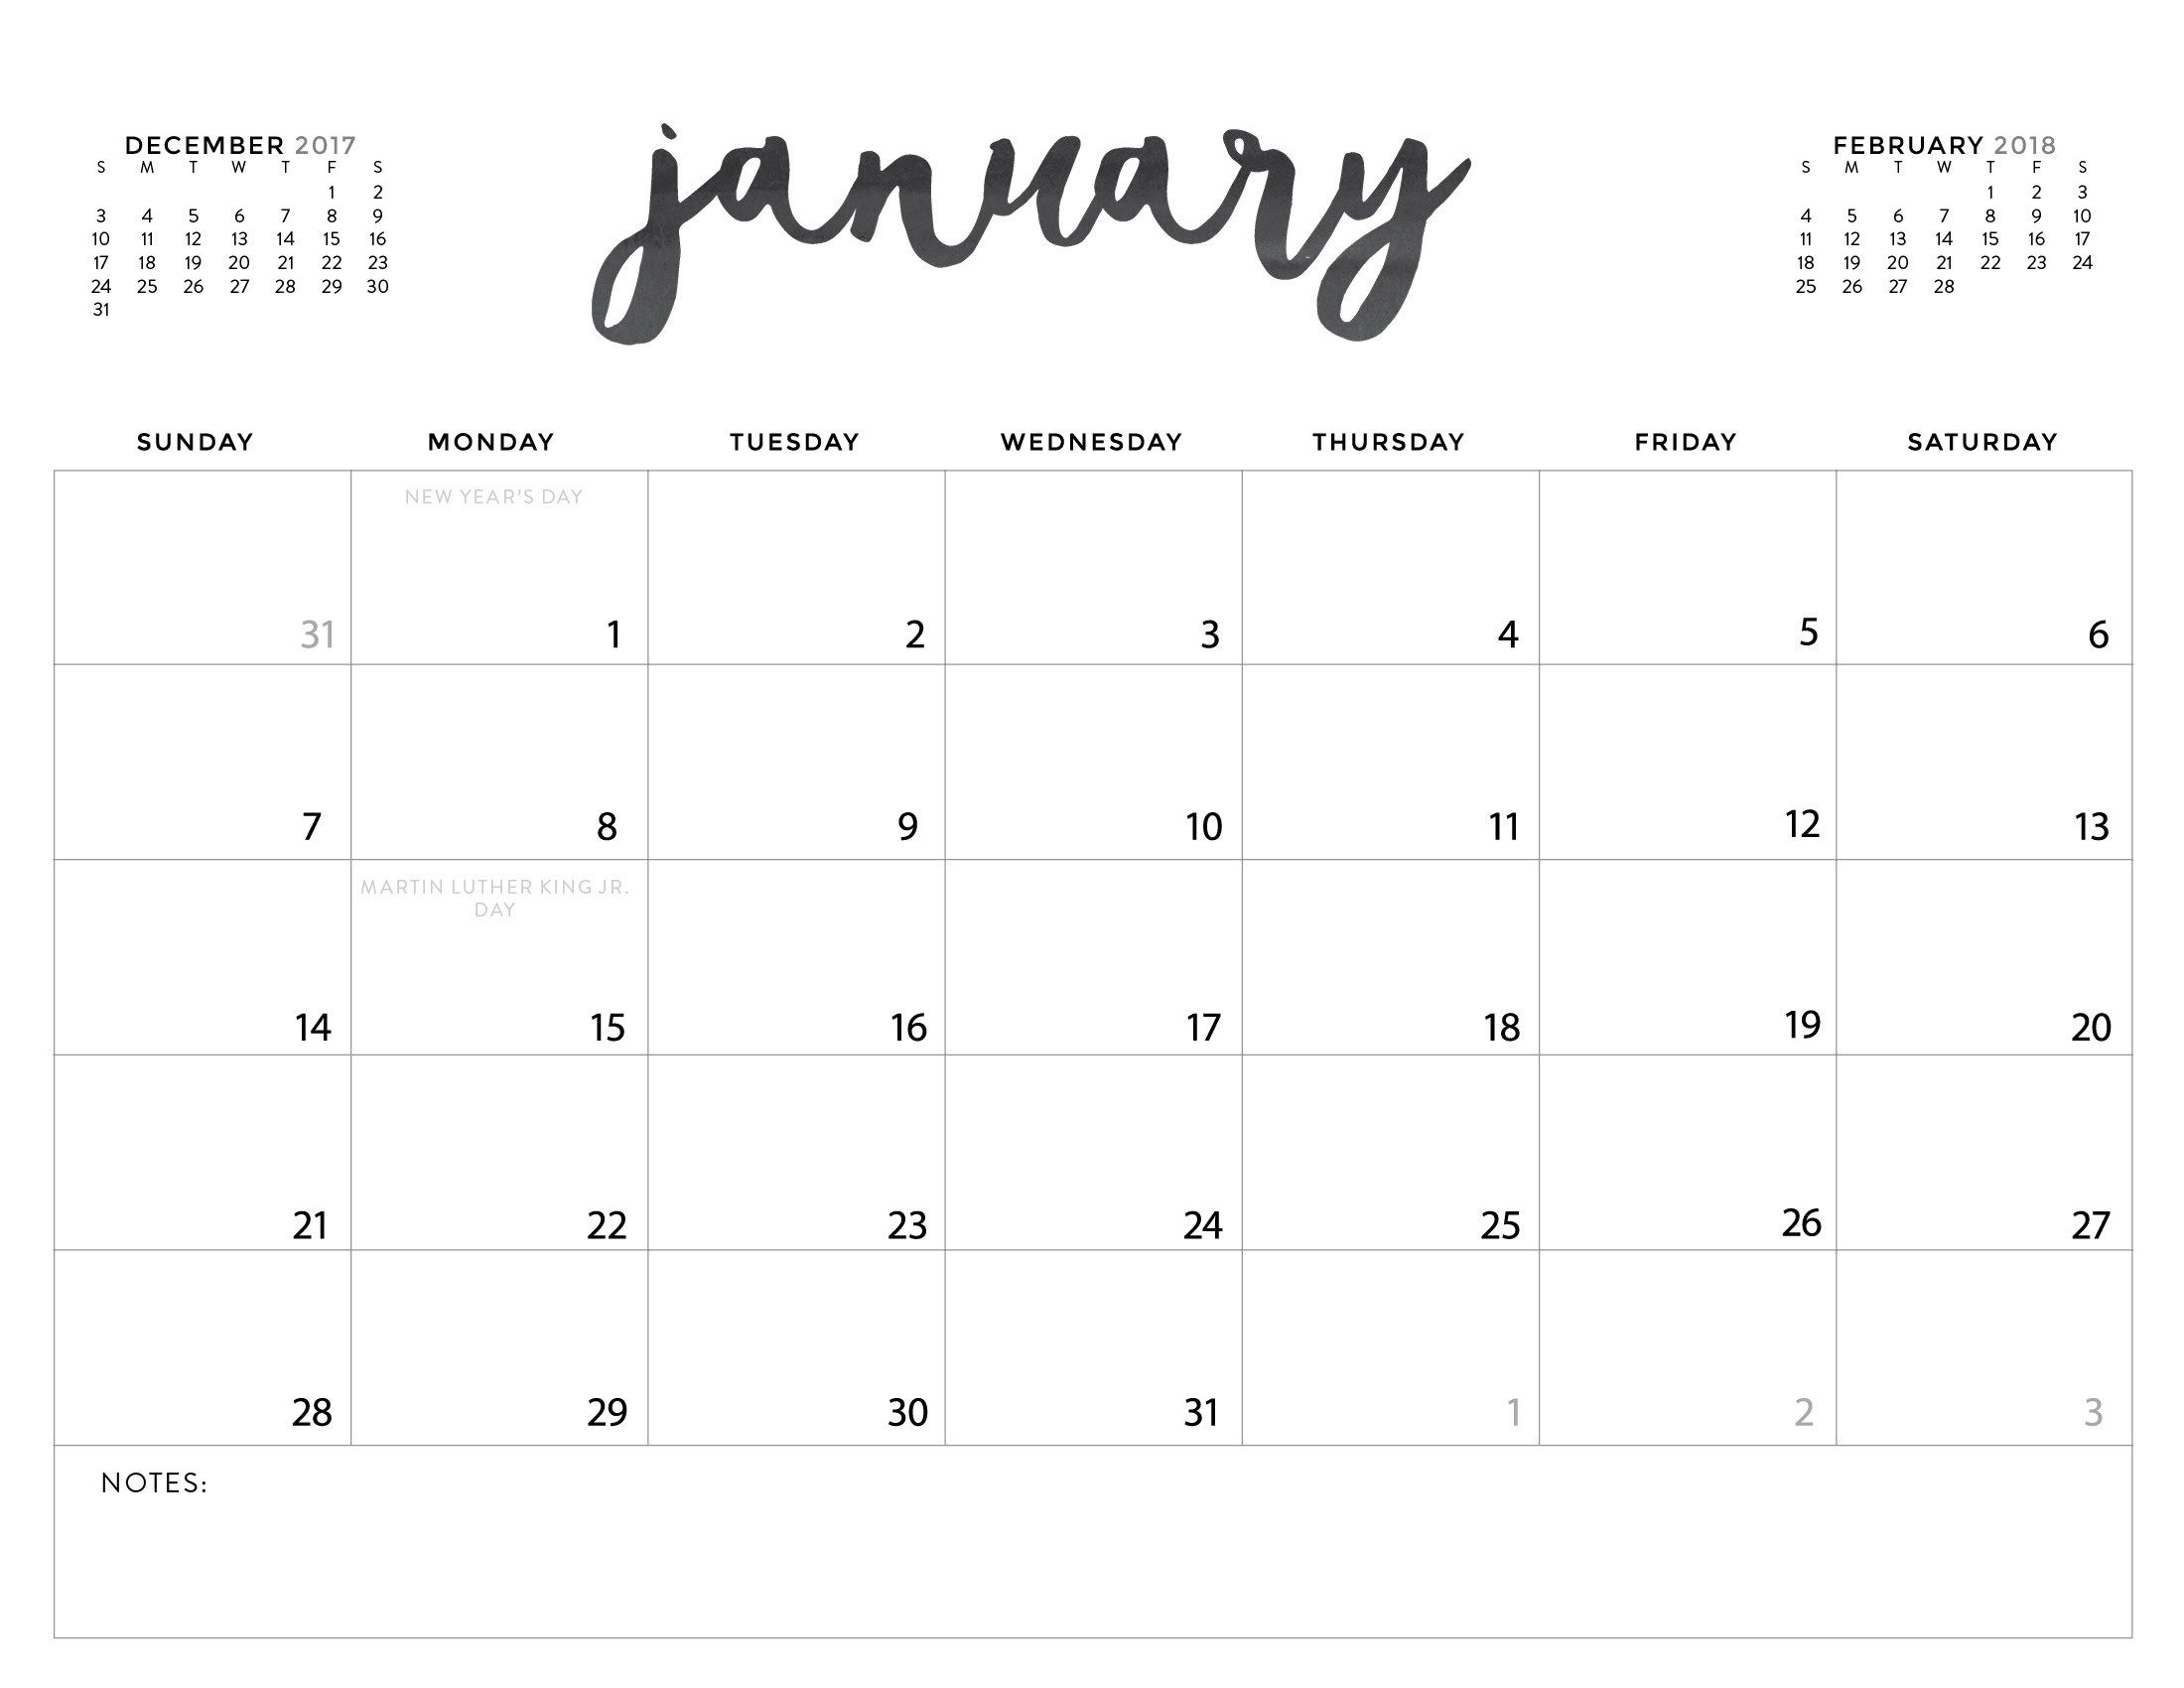 picture about Printable Calendars referred to as Down load your Absolutely free 2018 Printable Calendars nowadays! There are